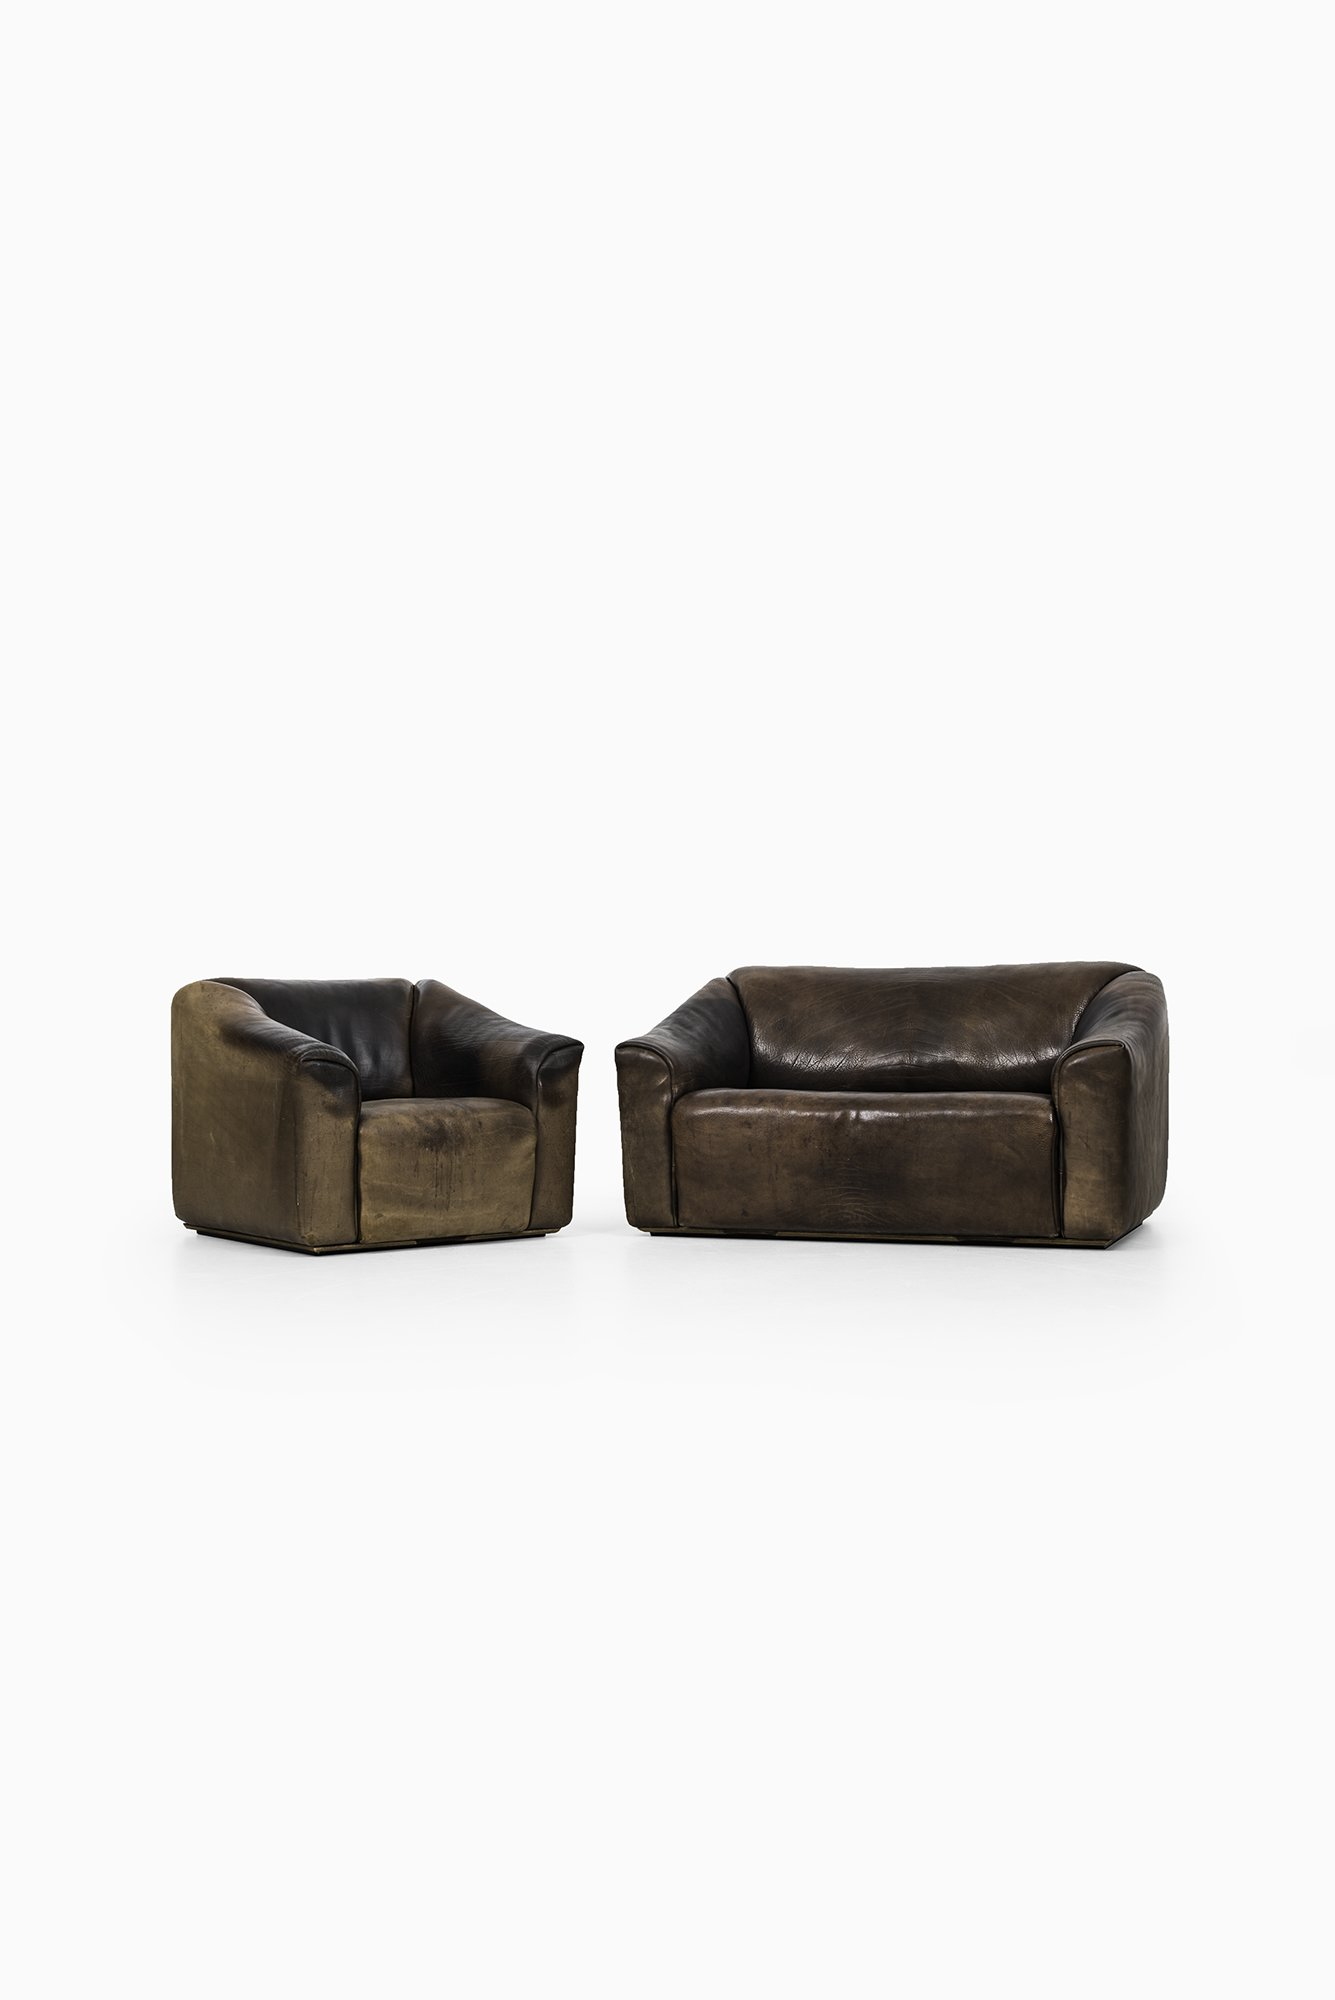 de sede ds 47 sofa and easy chair in thick bullhide at. Black Bedroom Furniture Sets. Home Design Ideas